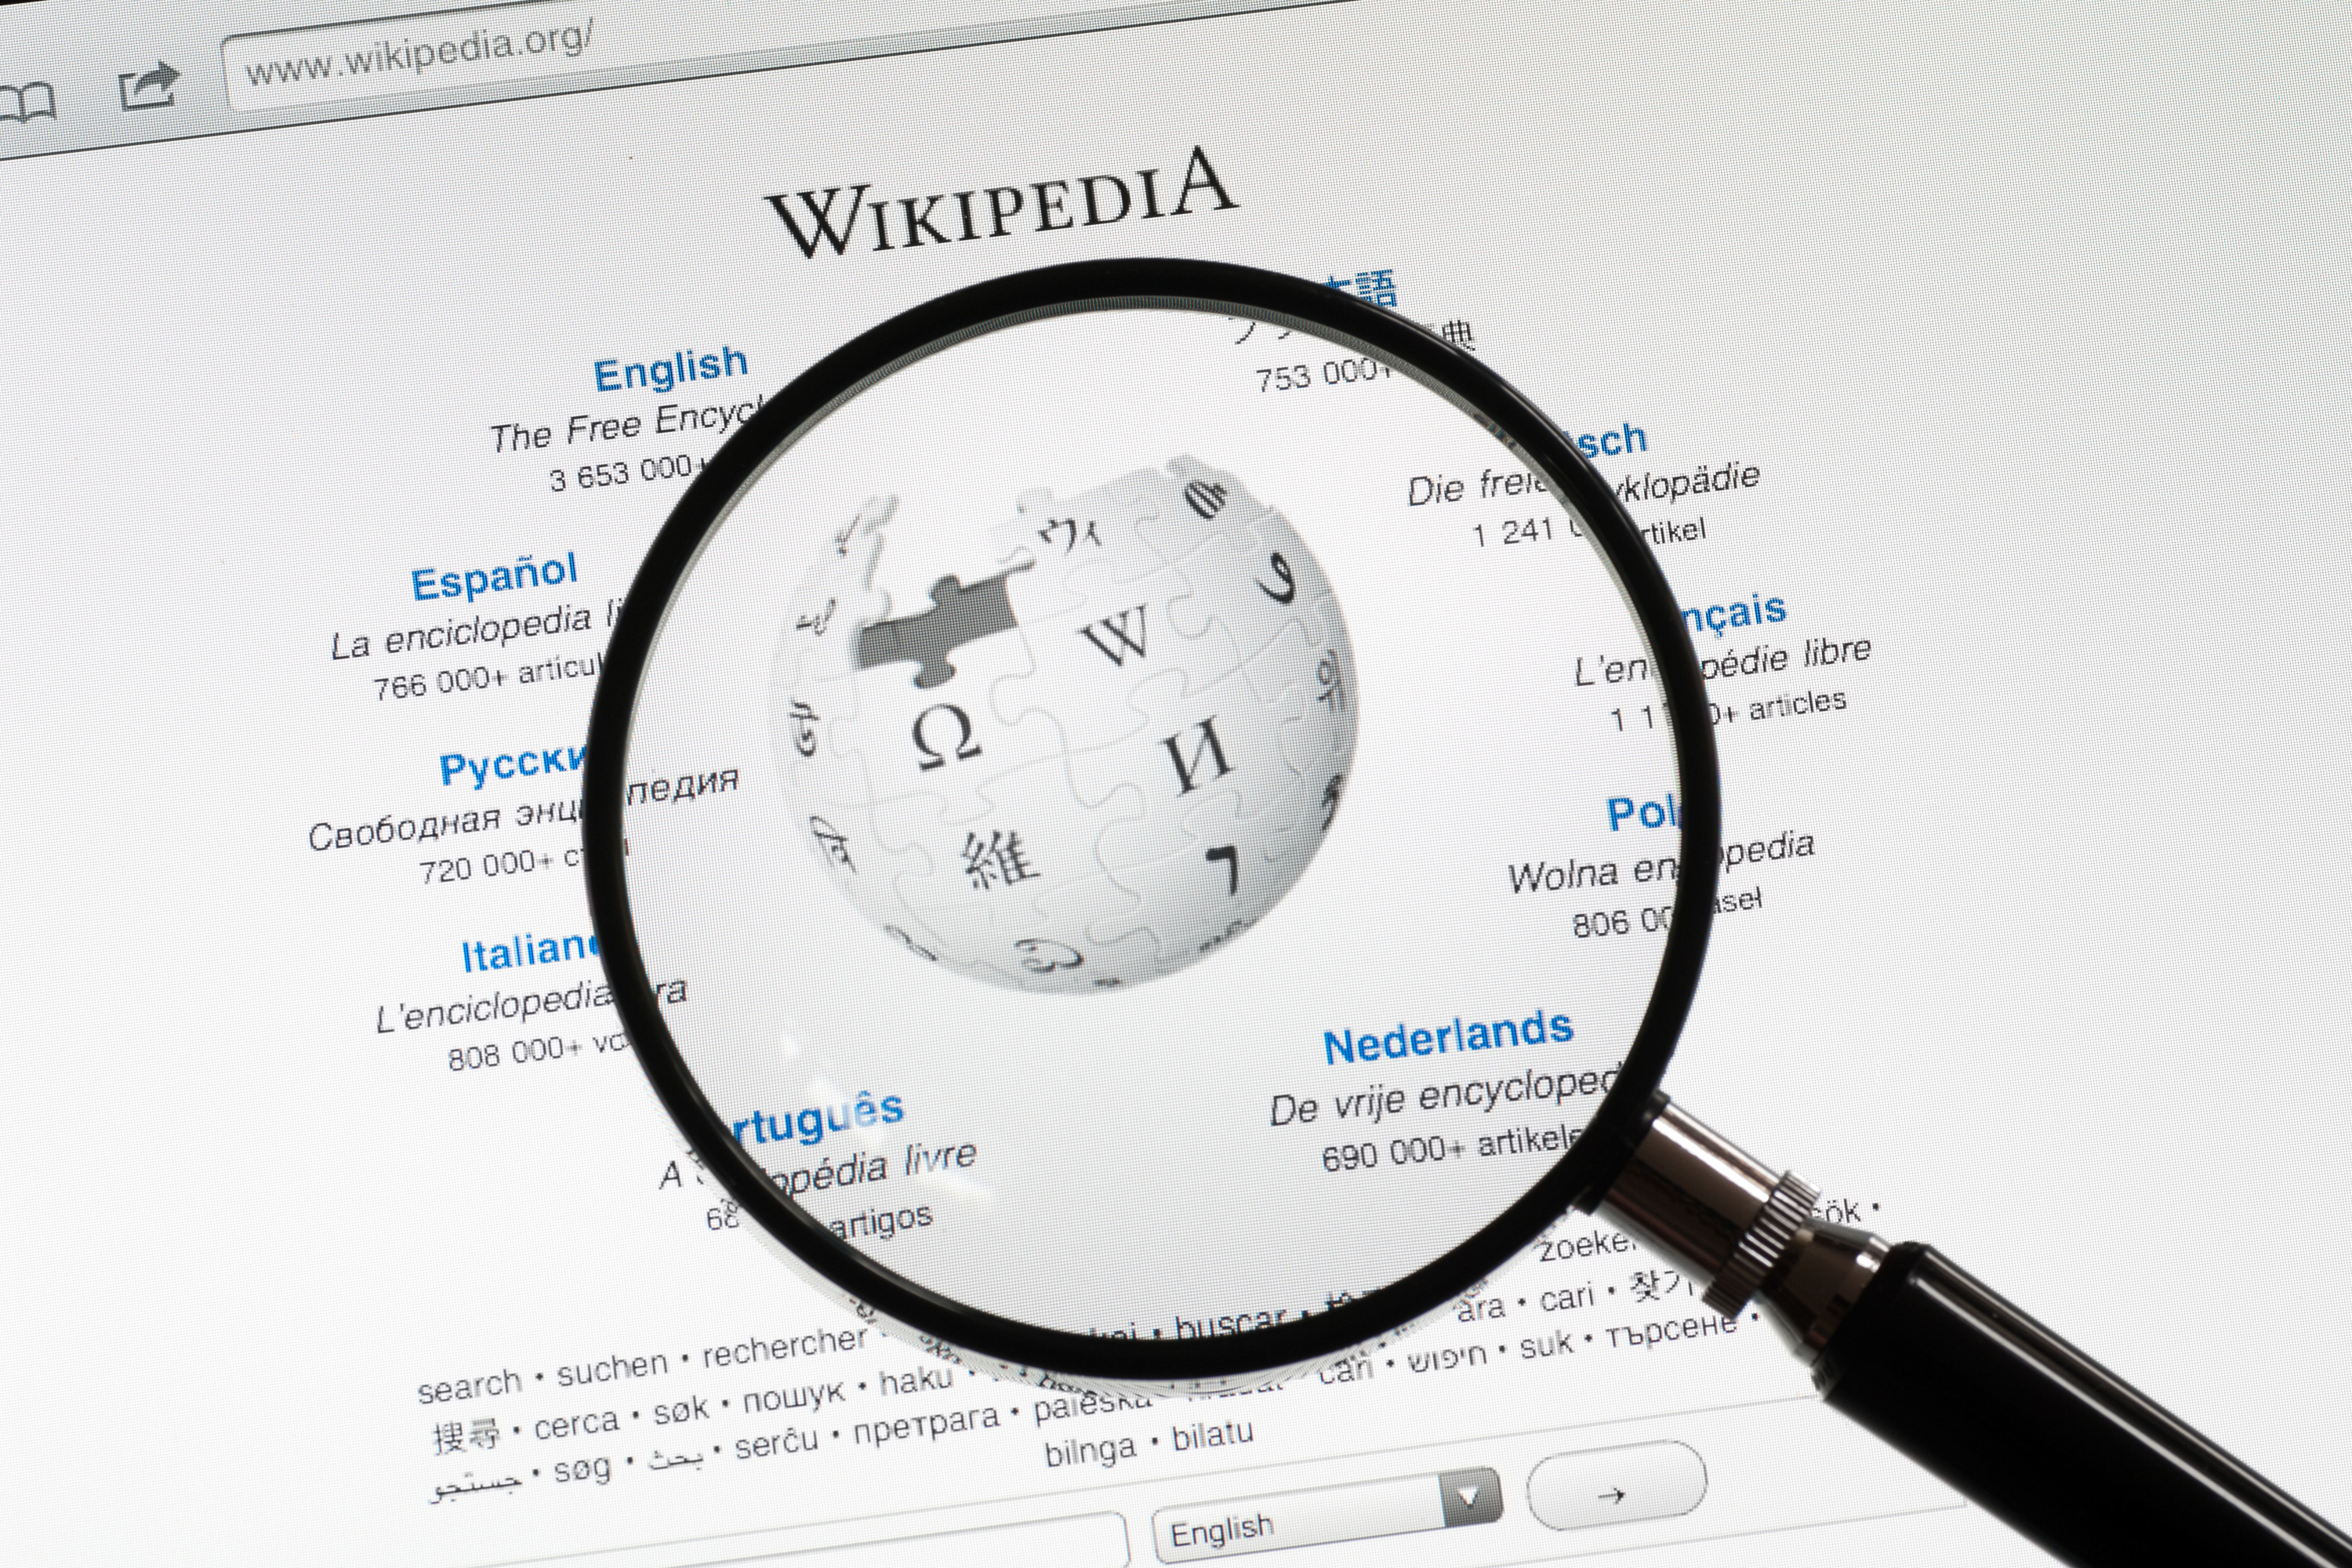 A history of brands hacking Wikipedia